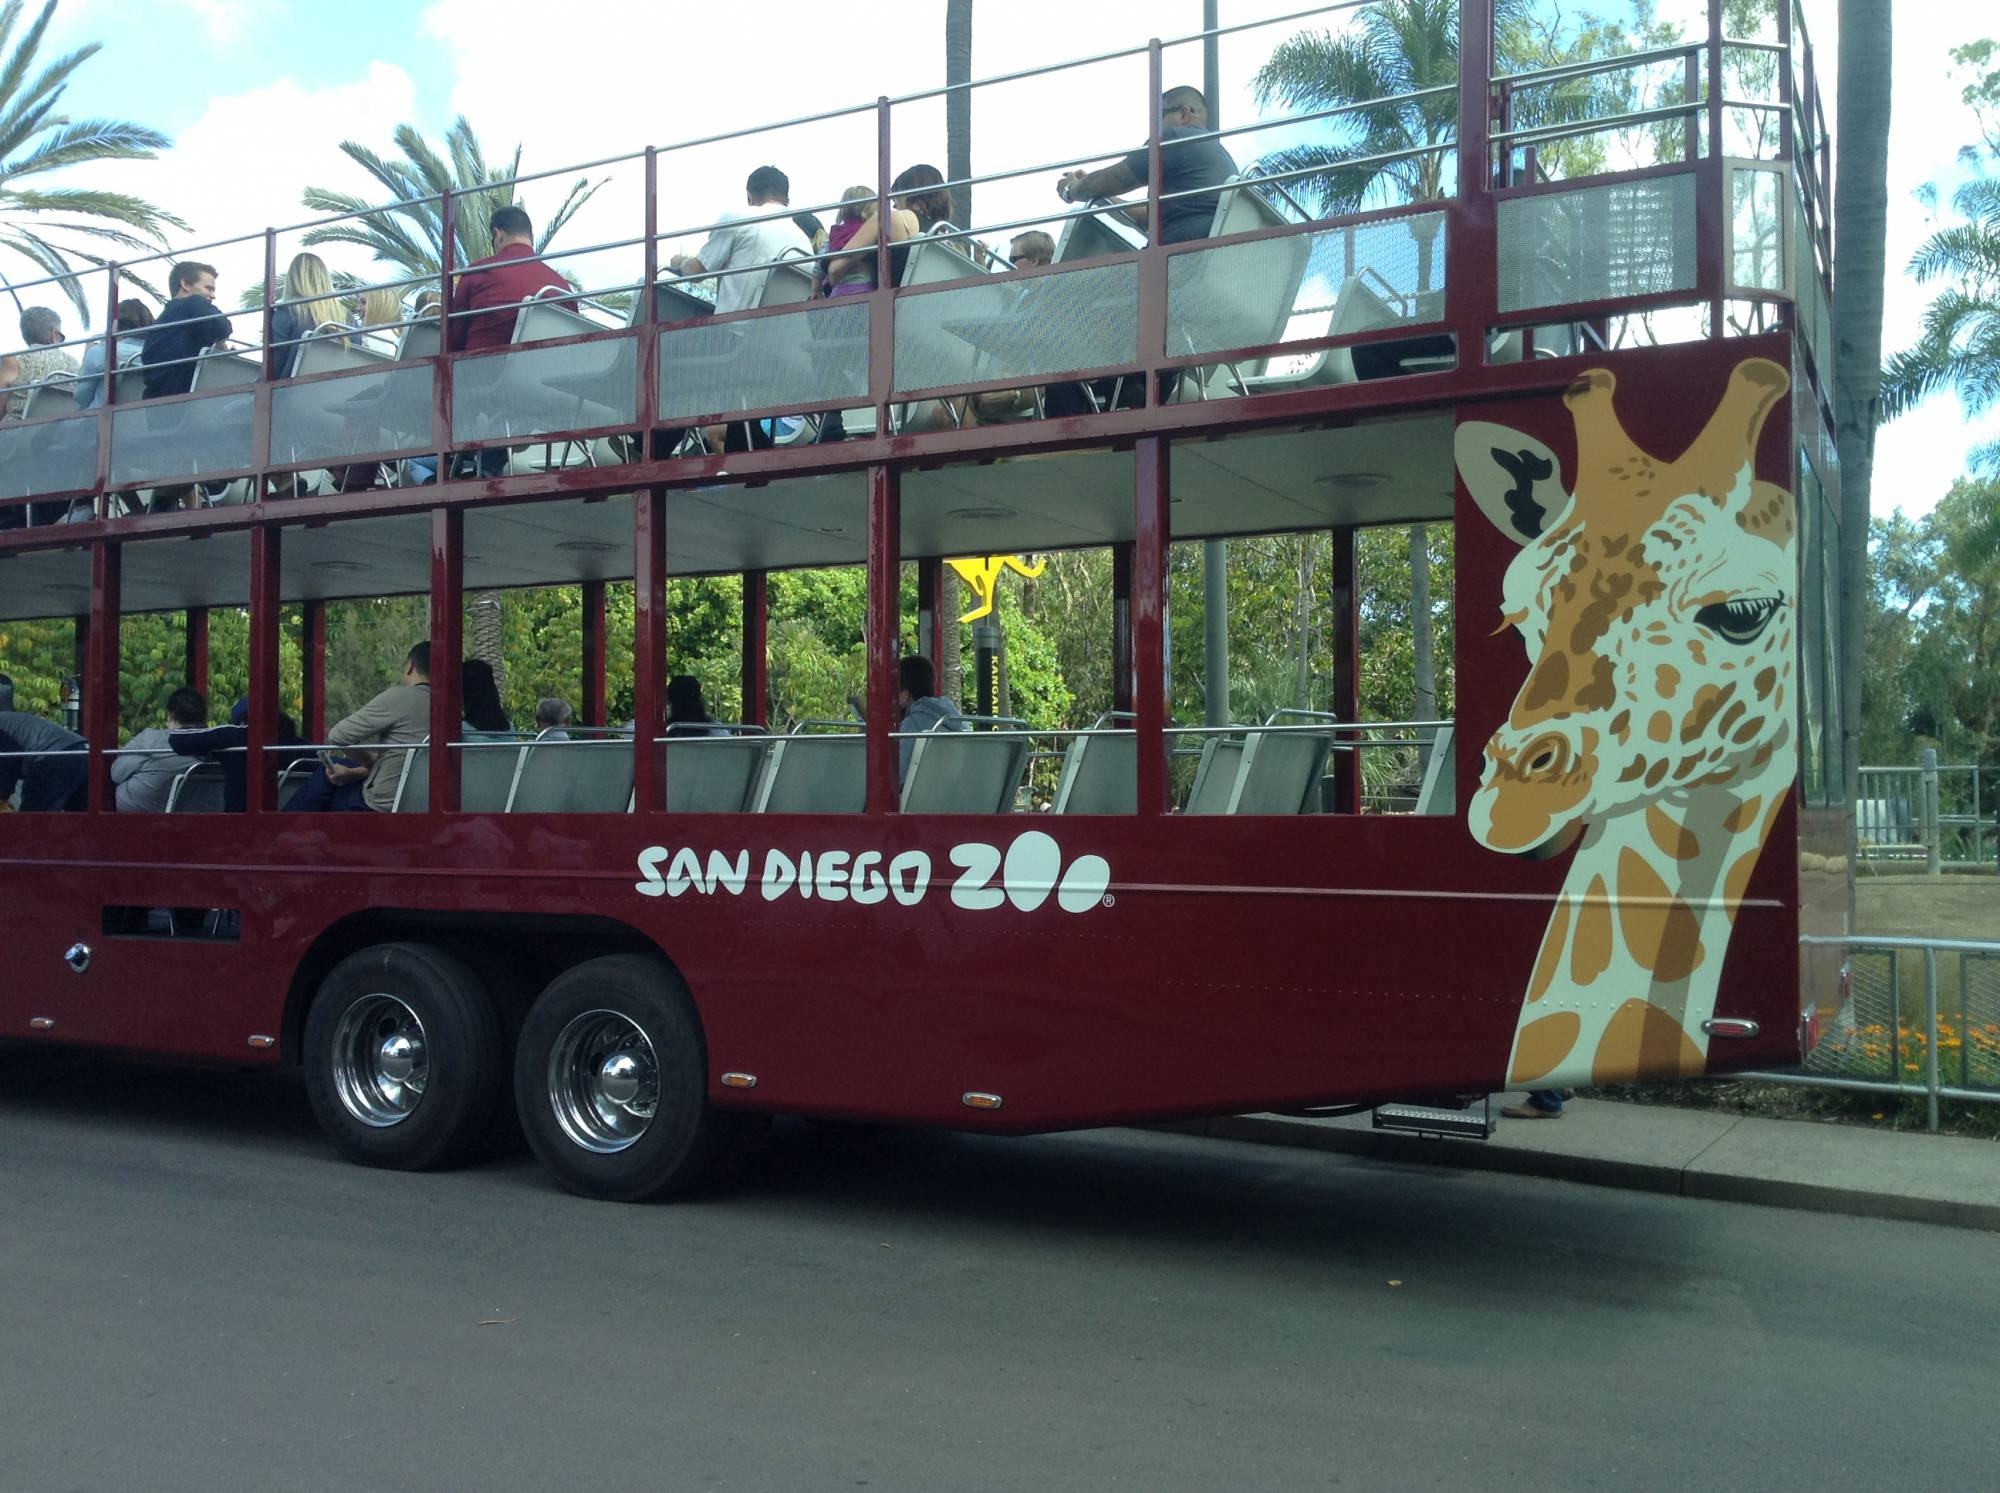 Explore the San Diego Zoo while in Southern California |PassPorter.com